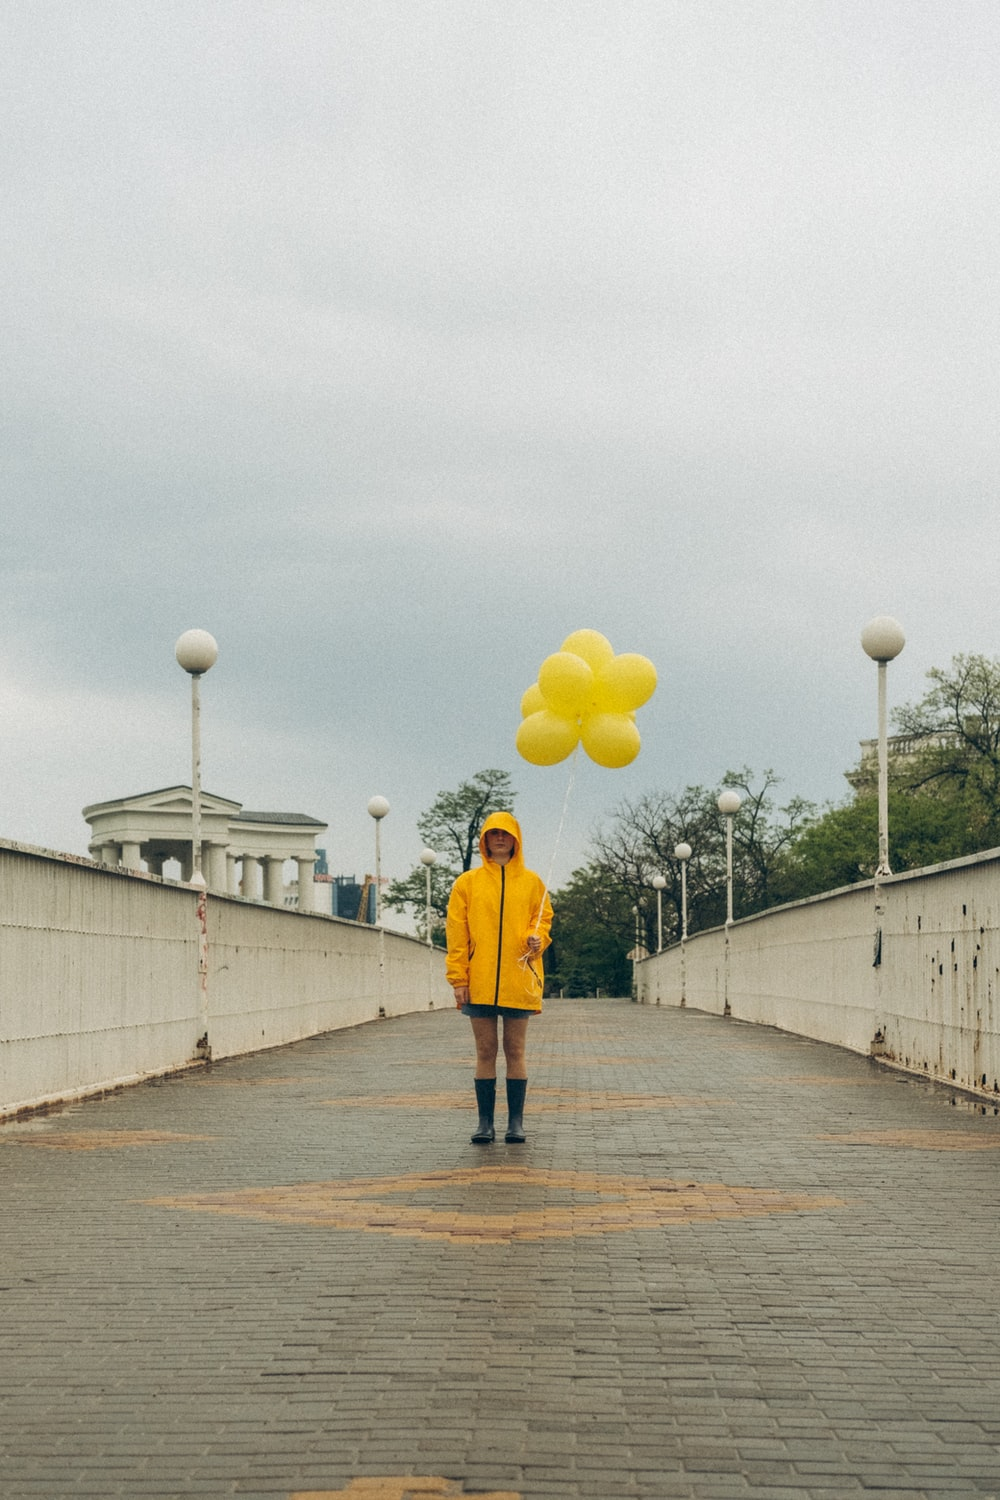 woman in yellow jacket and black pants holding yellow balloons